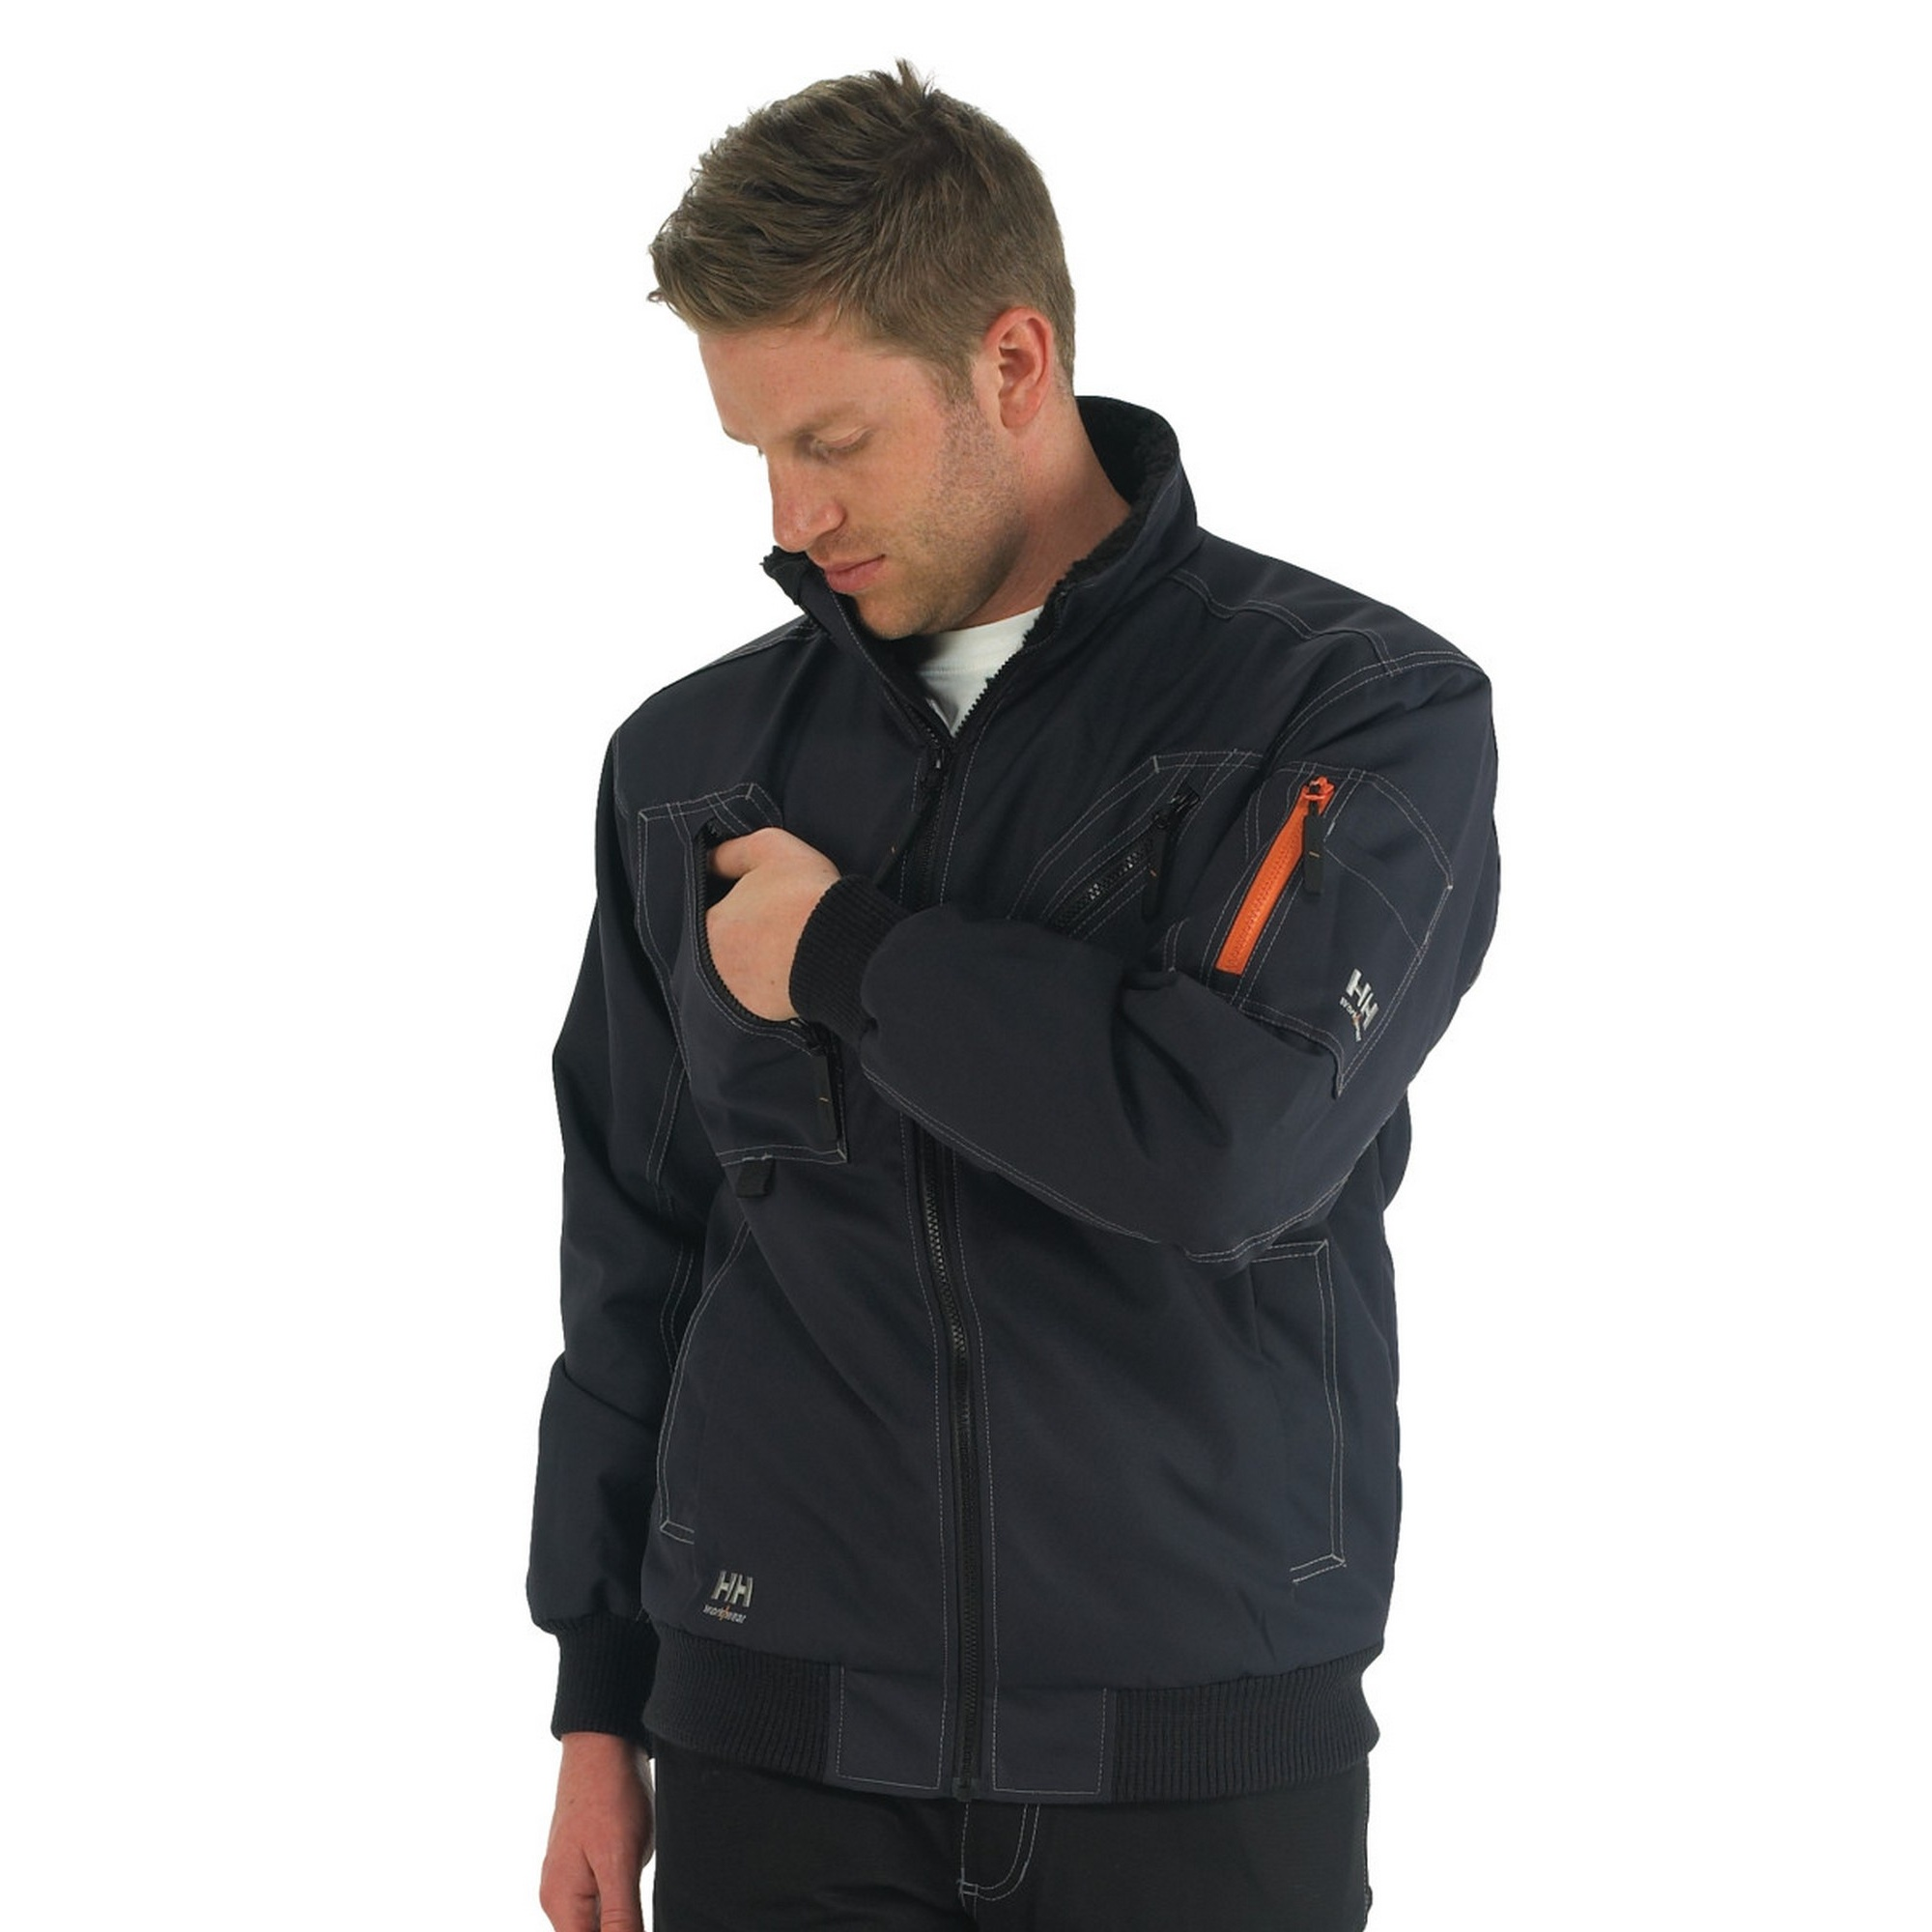 helly hansen bergholm full zip stylish work jacket mens workwear outerwear ebay. Black Bedroom Furniture Sets. Home Design Ideas